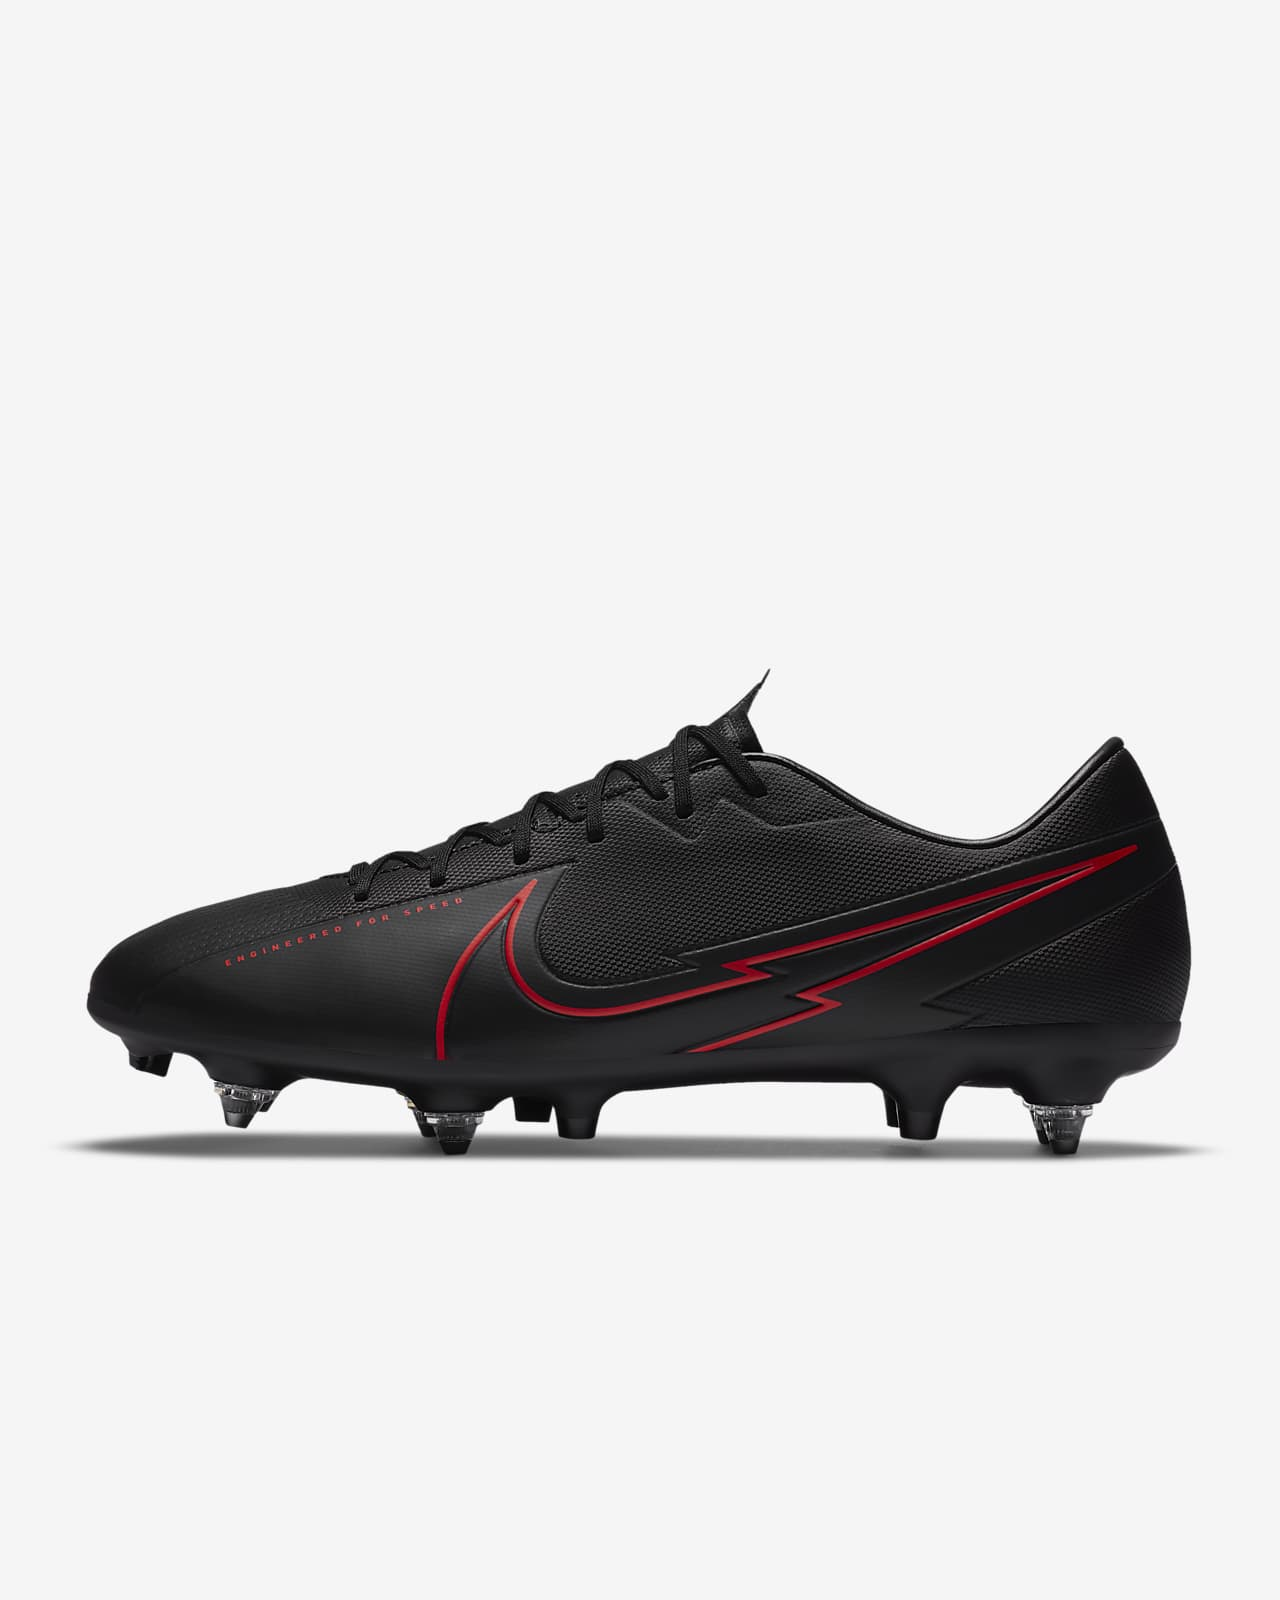 Nike Mercurial Vapor 13 Academy SG-PRO Anti-Clog Traction Soft-Ground Football Boot